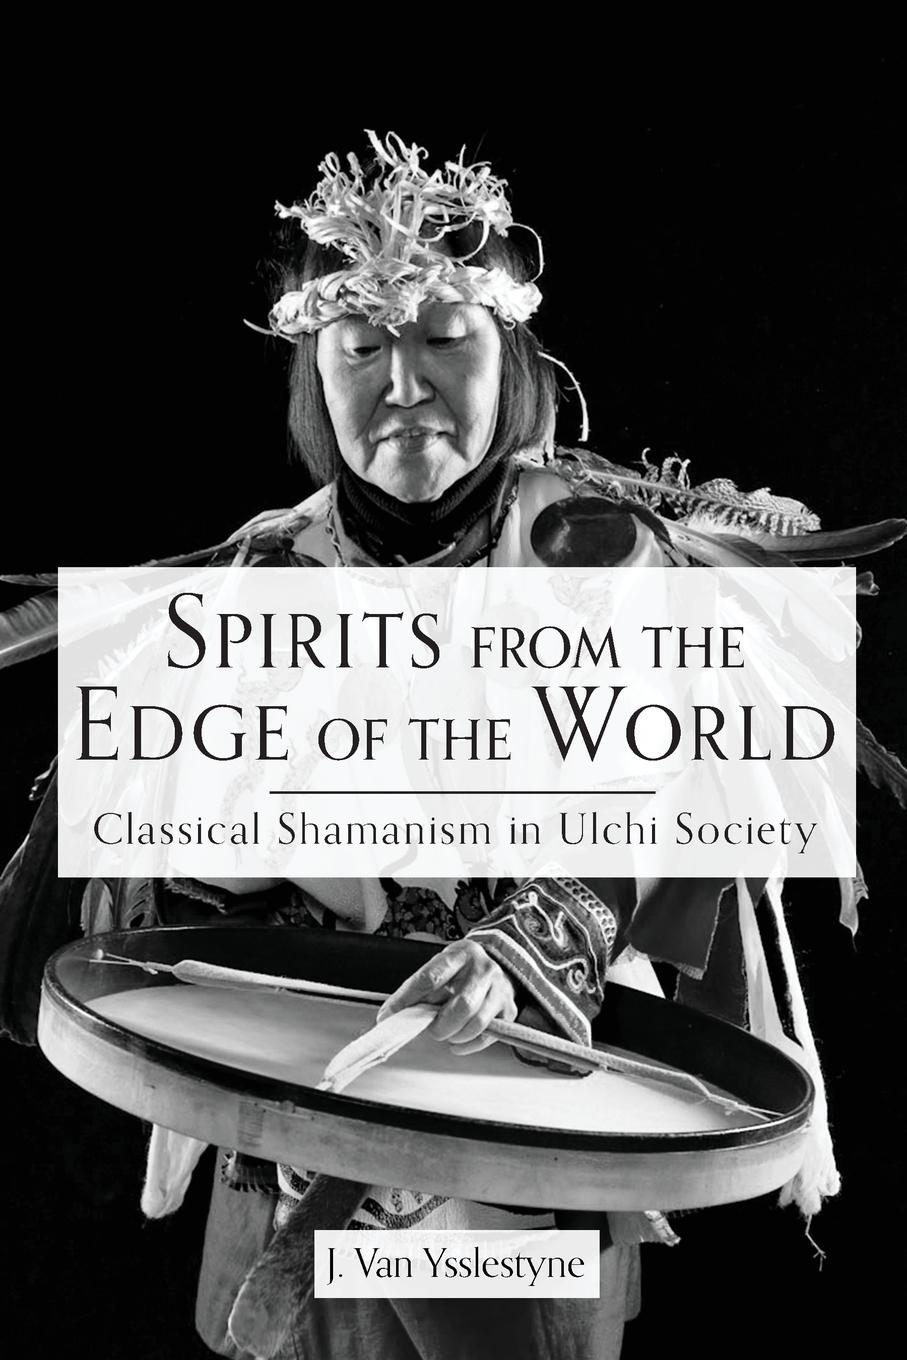 цены на J Van Ysslestyne Spirits from the Edge of the World. Classical shamanism in Ulchi Society  в интернет-магазинах